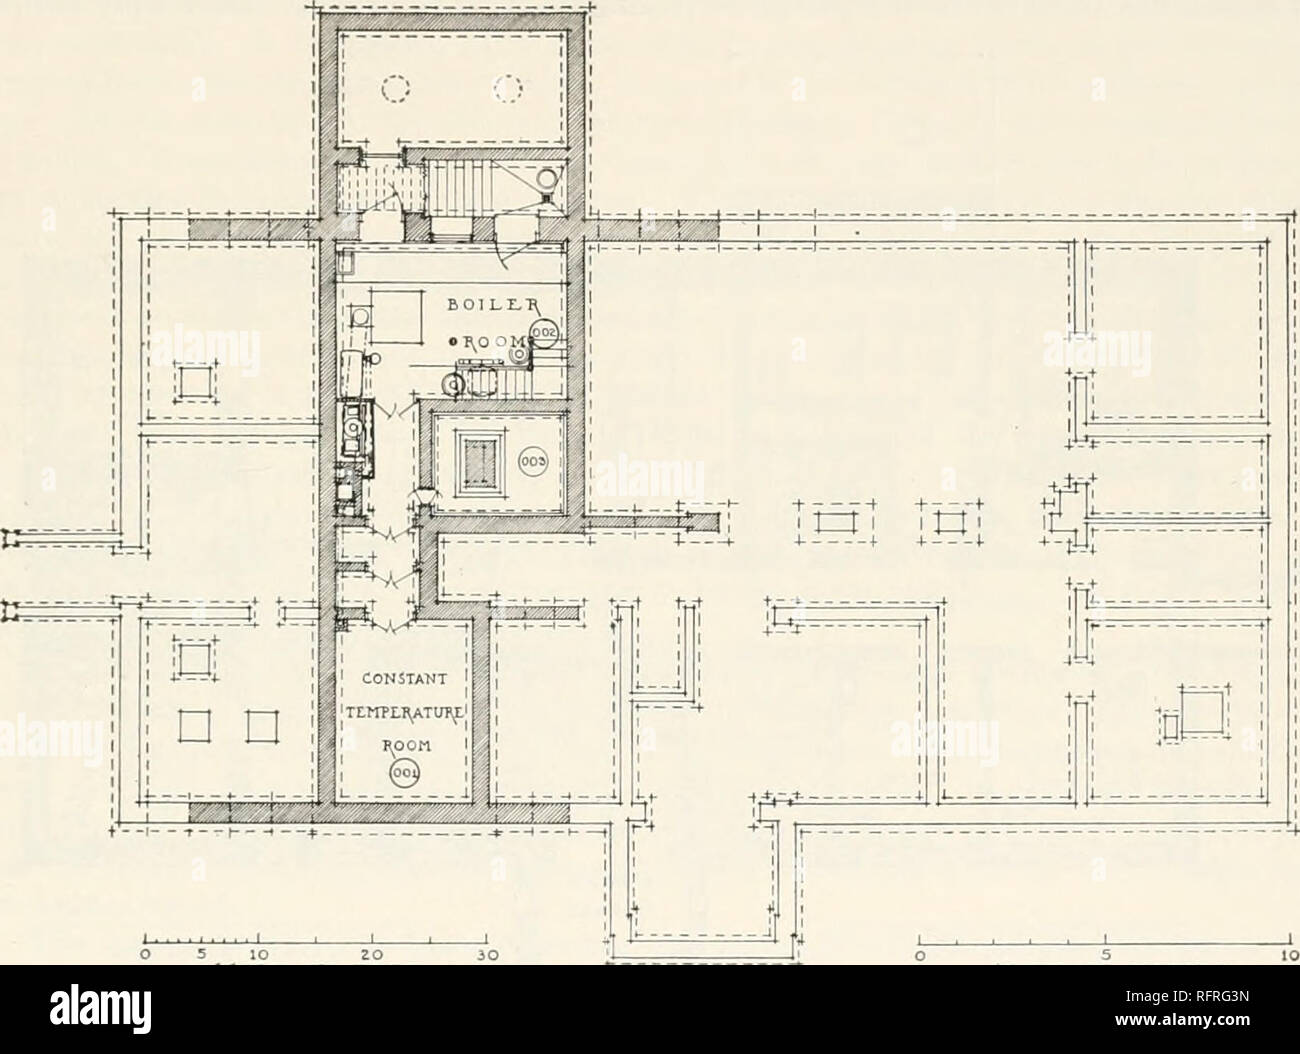 hight resolution of carnegie institution of washington publication research buildings 193 the pinnibing arrmxgements are exceptionally complete